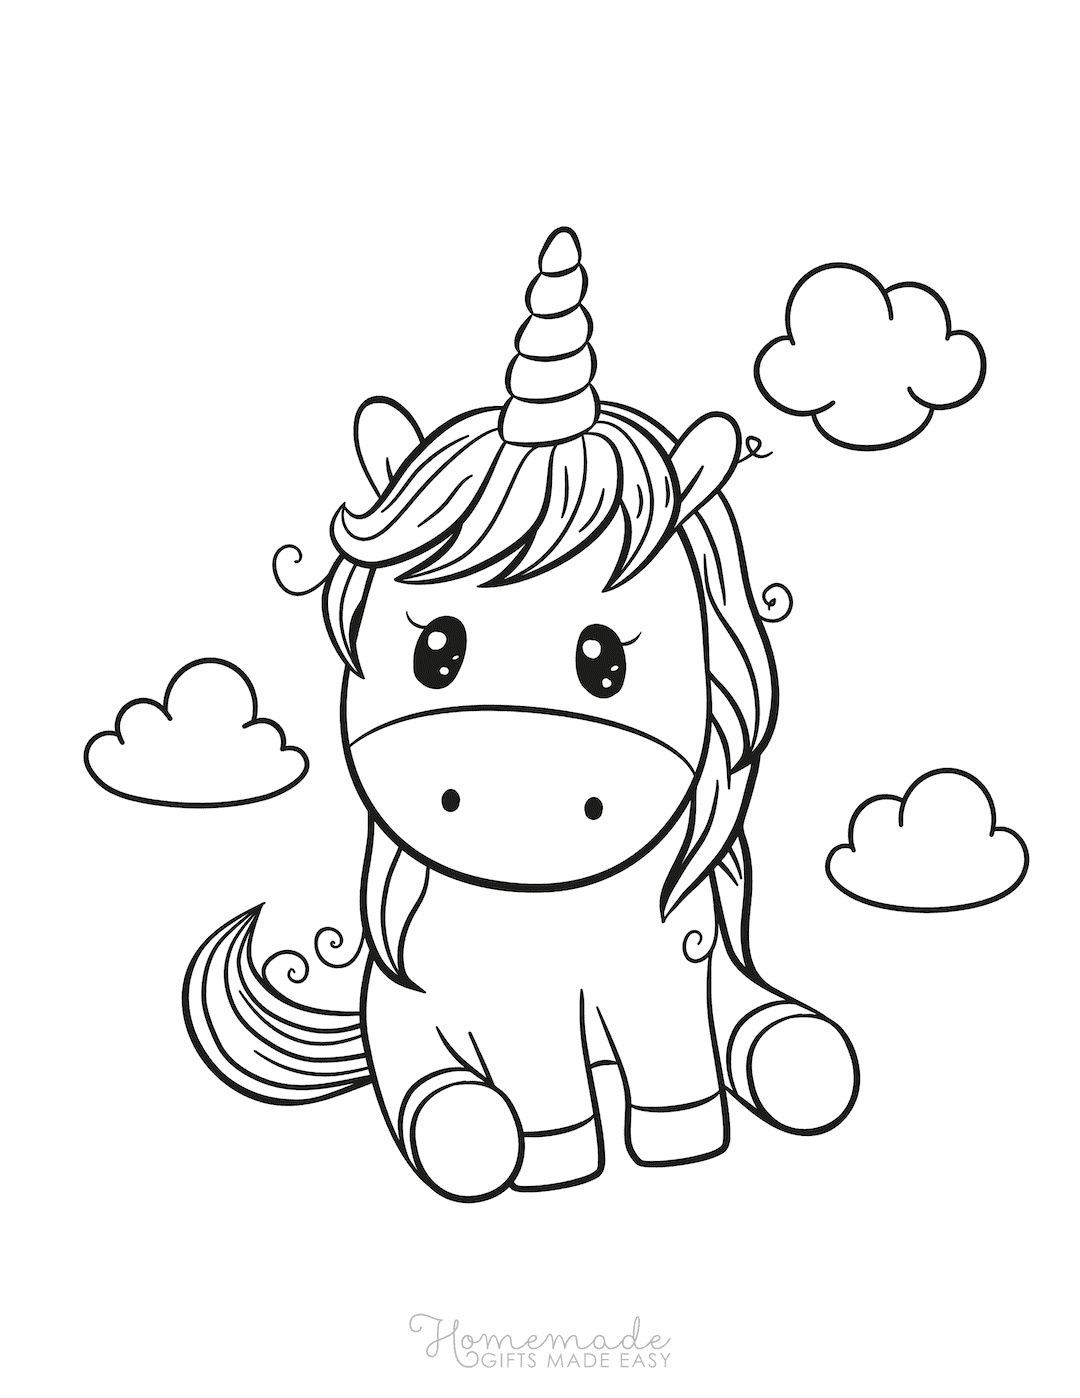 75 Magical Unicorn Coloring Pages For Kids Adults Free Printables Unicorn Outline Unicorn Coloring Pages Coloring Books